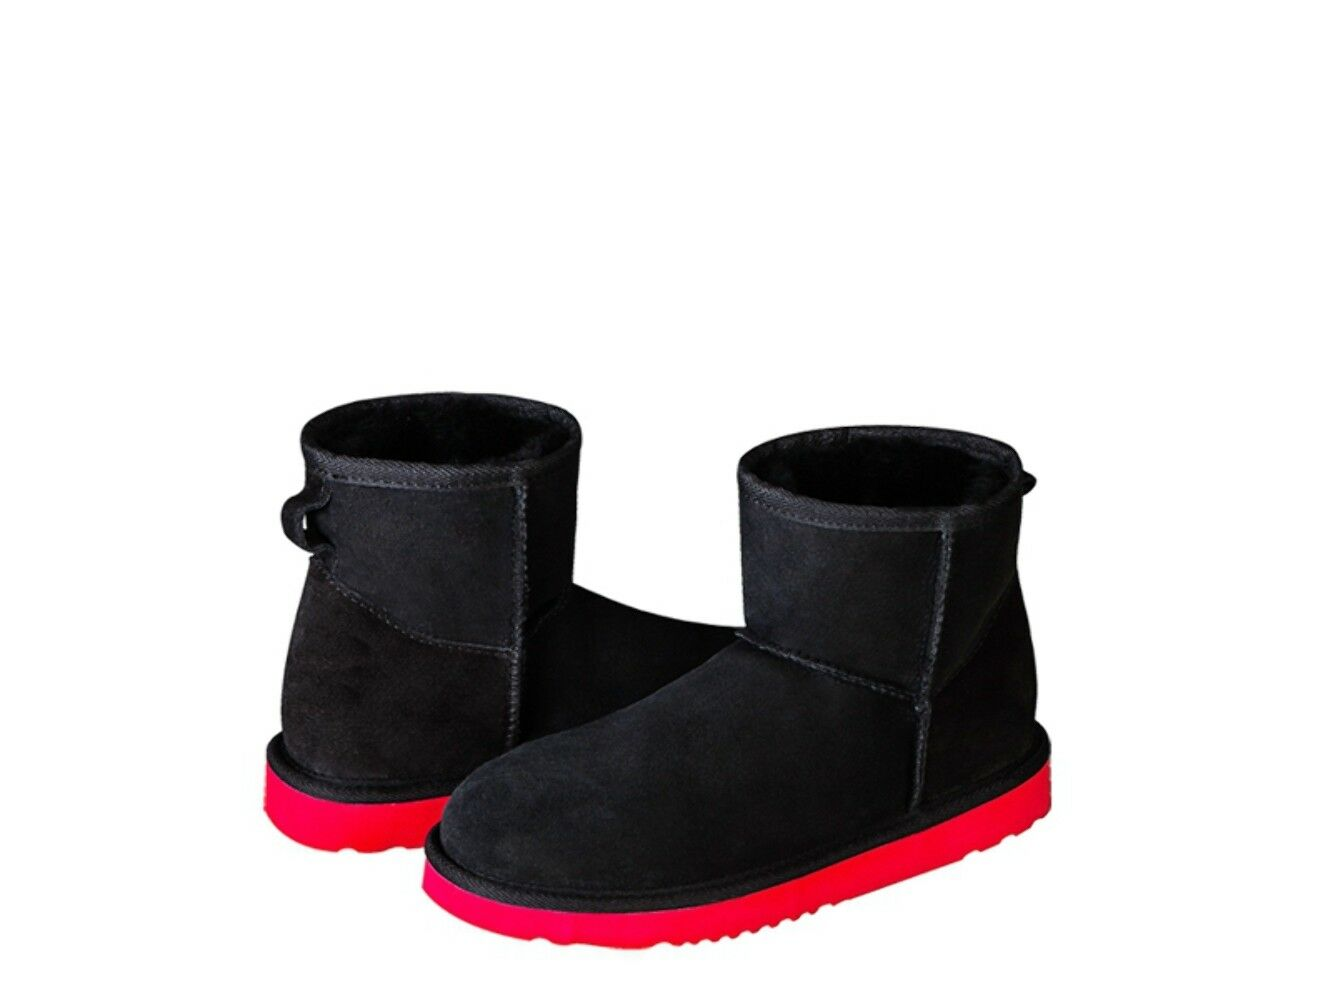 AUSTRALIAN ORIGINAL ® CLASSIC MINI R&B Australia. SHEEPSKIN Stiefel. Made in Australia. R&B 37237a